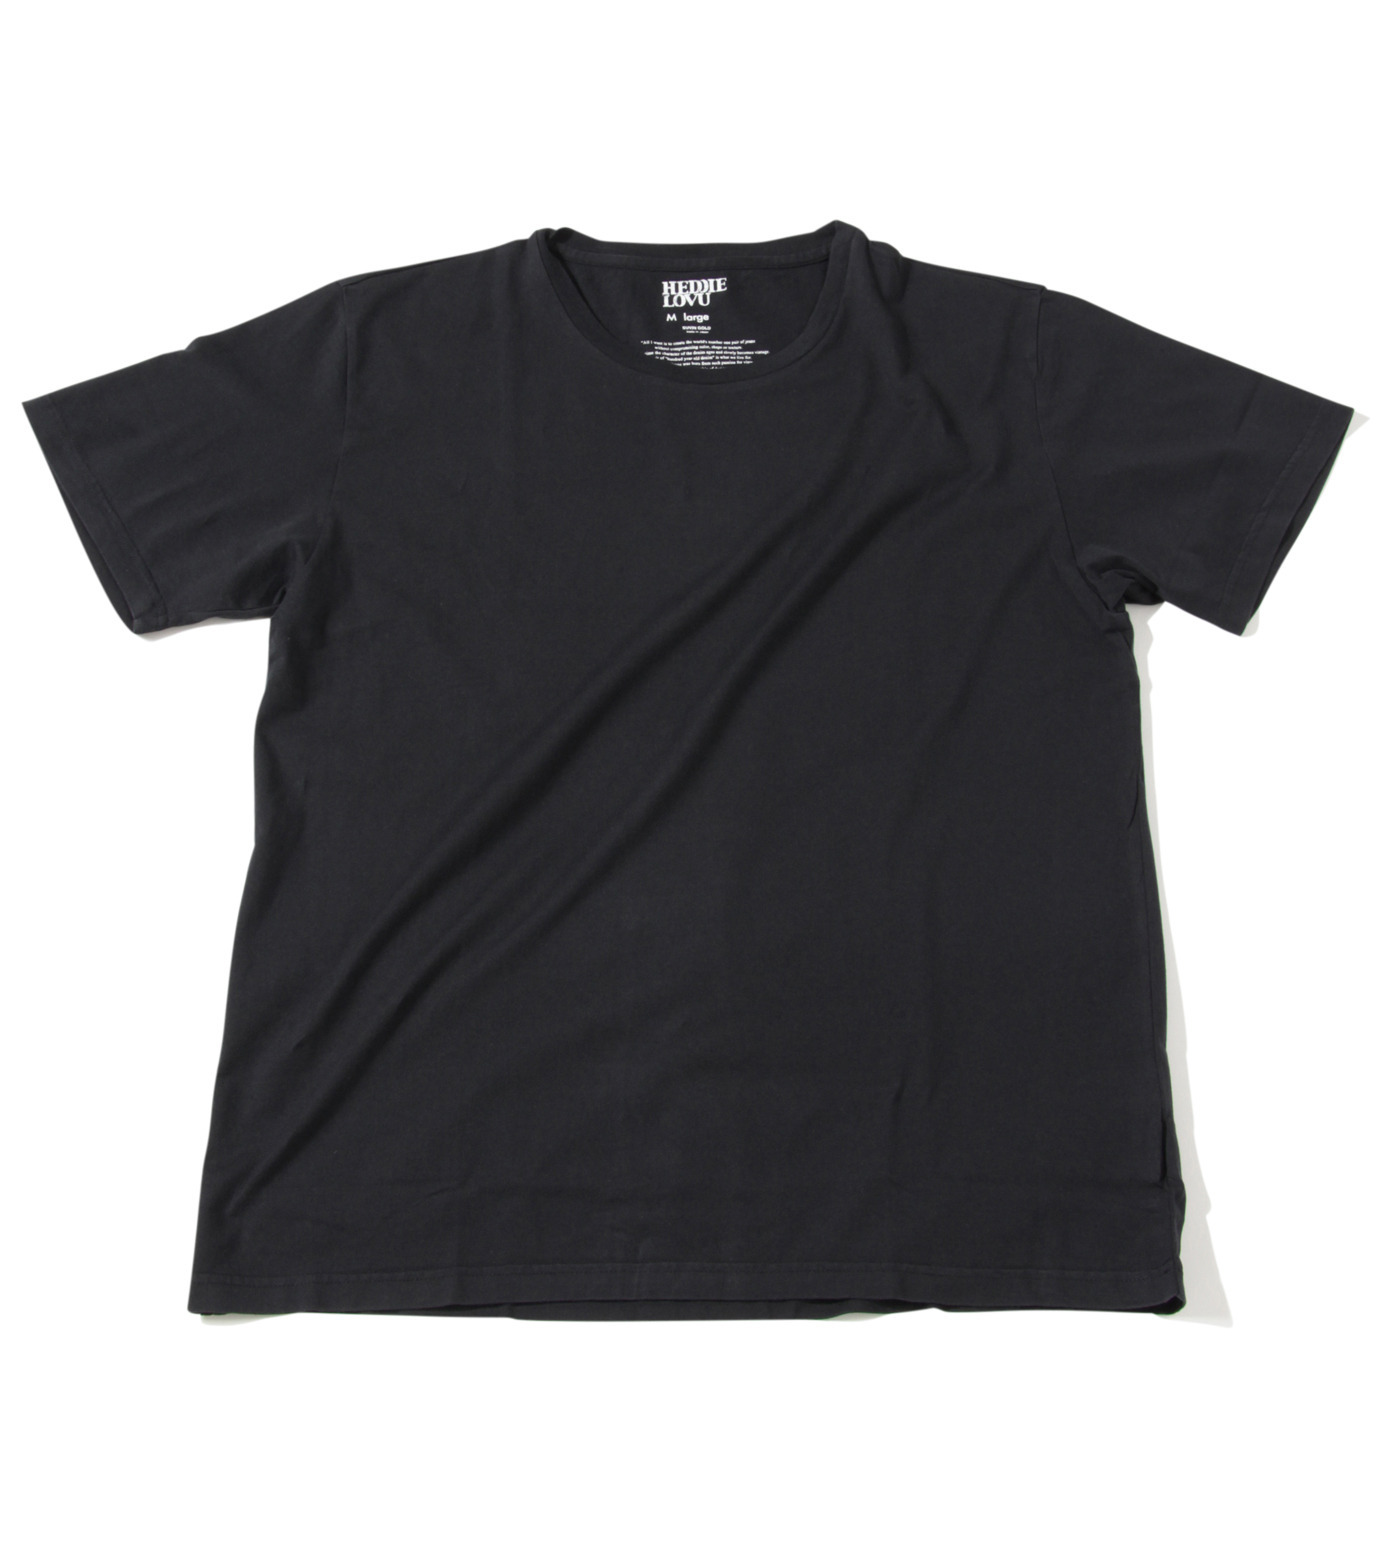 Heddie Lovu(エディー ルーヴ)のU NECK 【SLIM】-BLACK(カットソー/cut and sewn)-ST-S1-00-14A 拡大詳細画像1